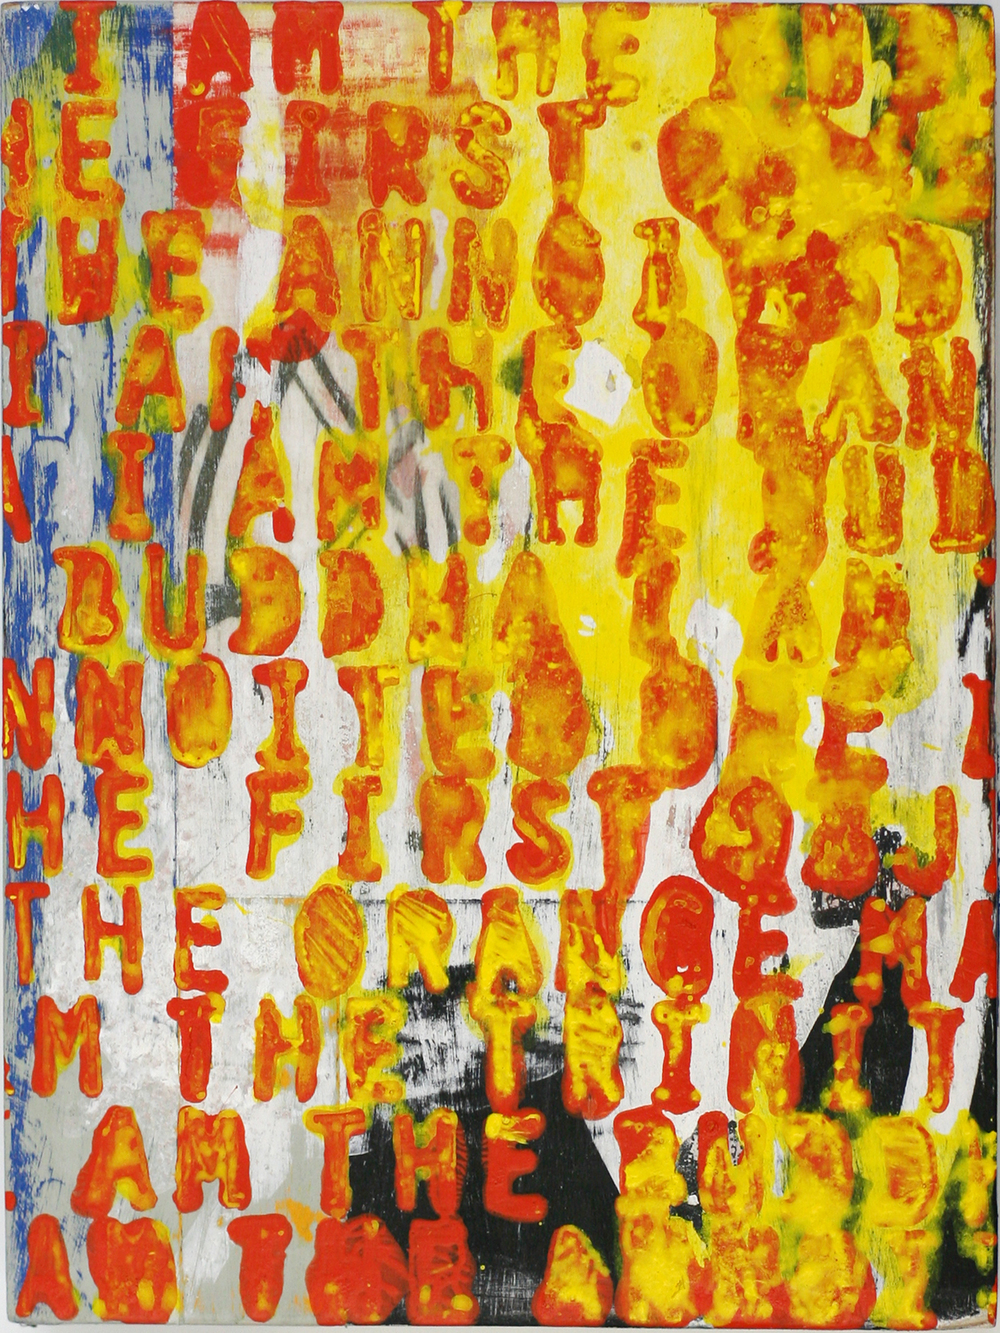 I Am the Orange Man, acrylic on wood panel (private collection)